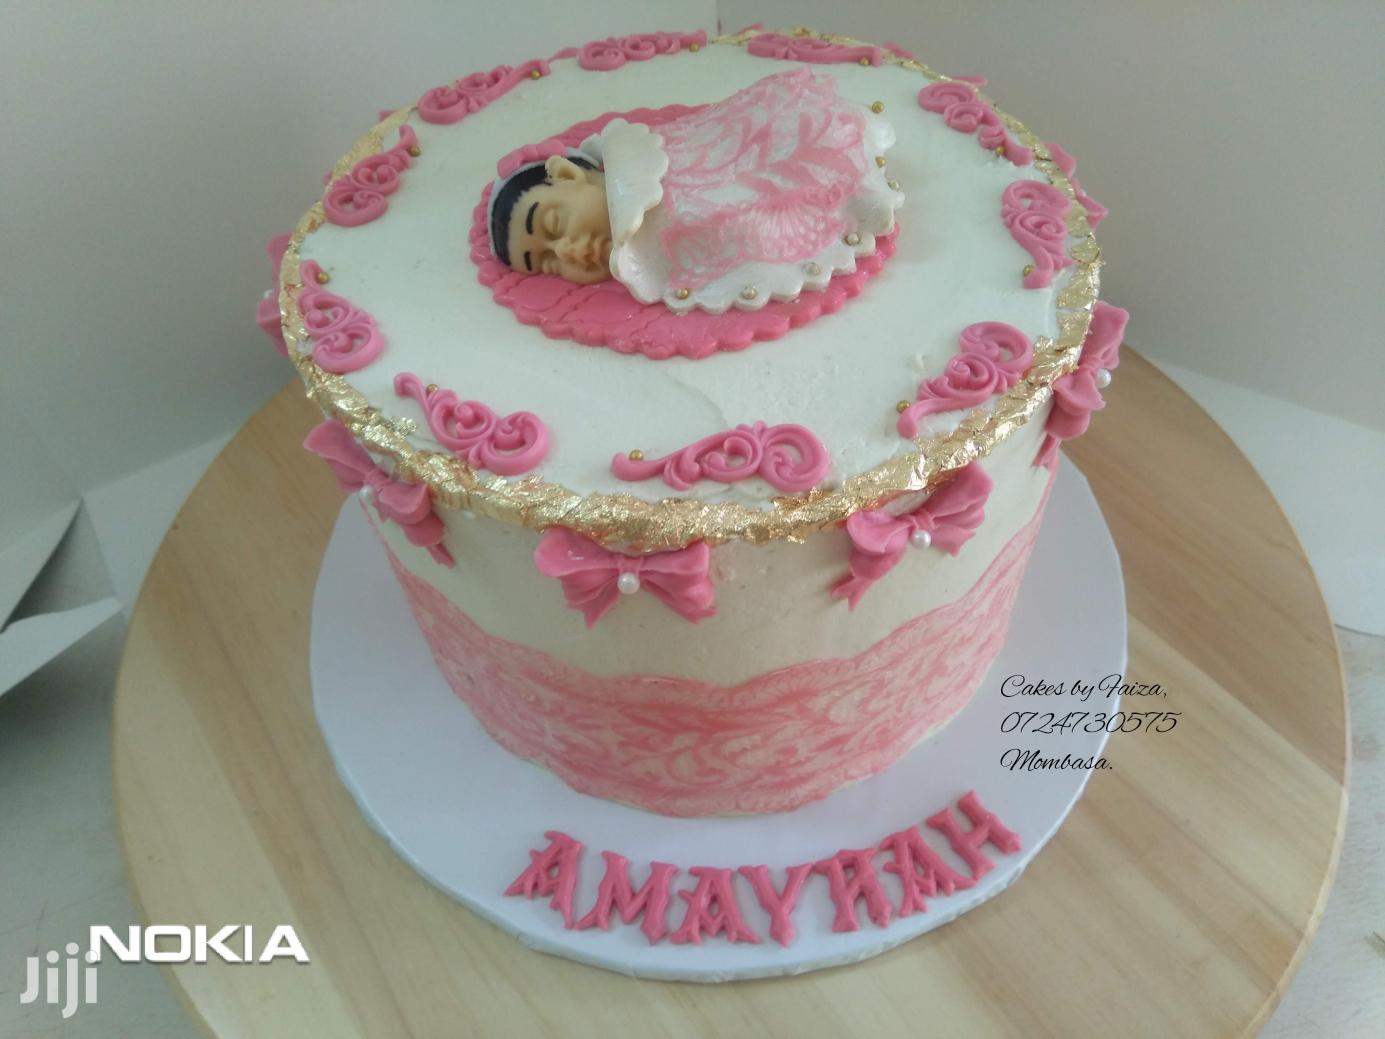 Archive: Cakes By Faiza